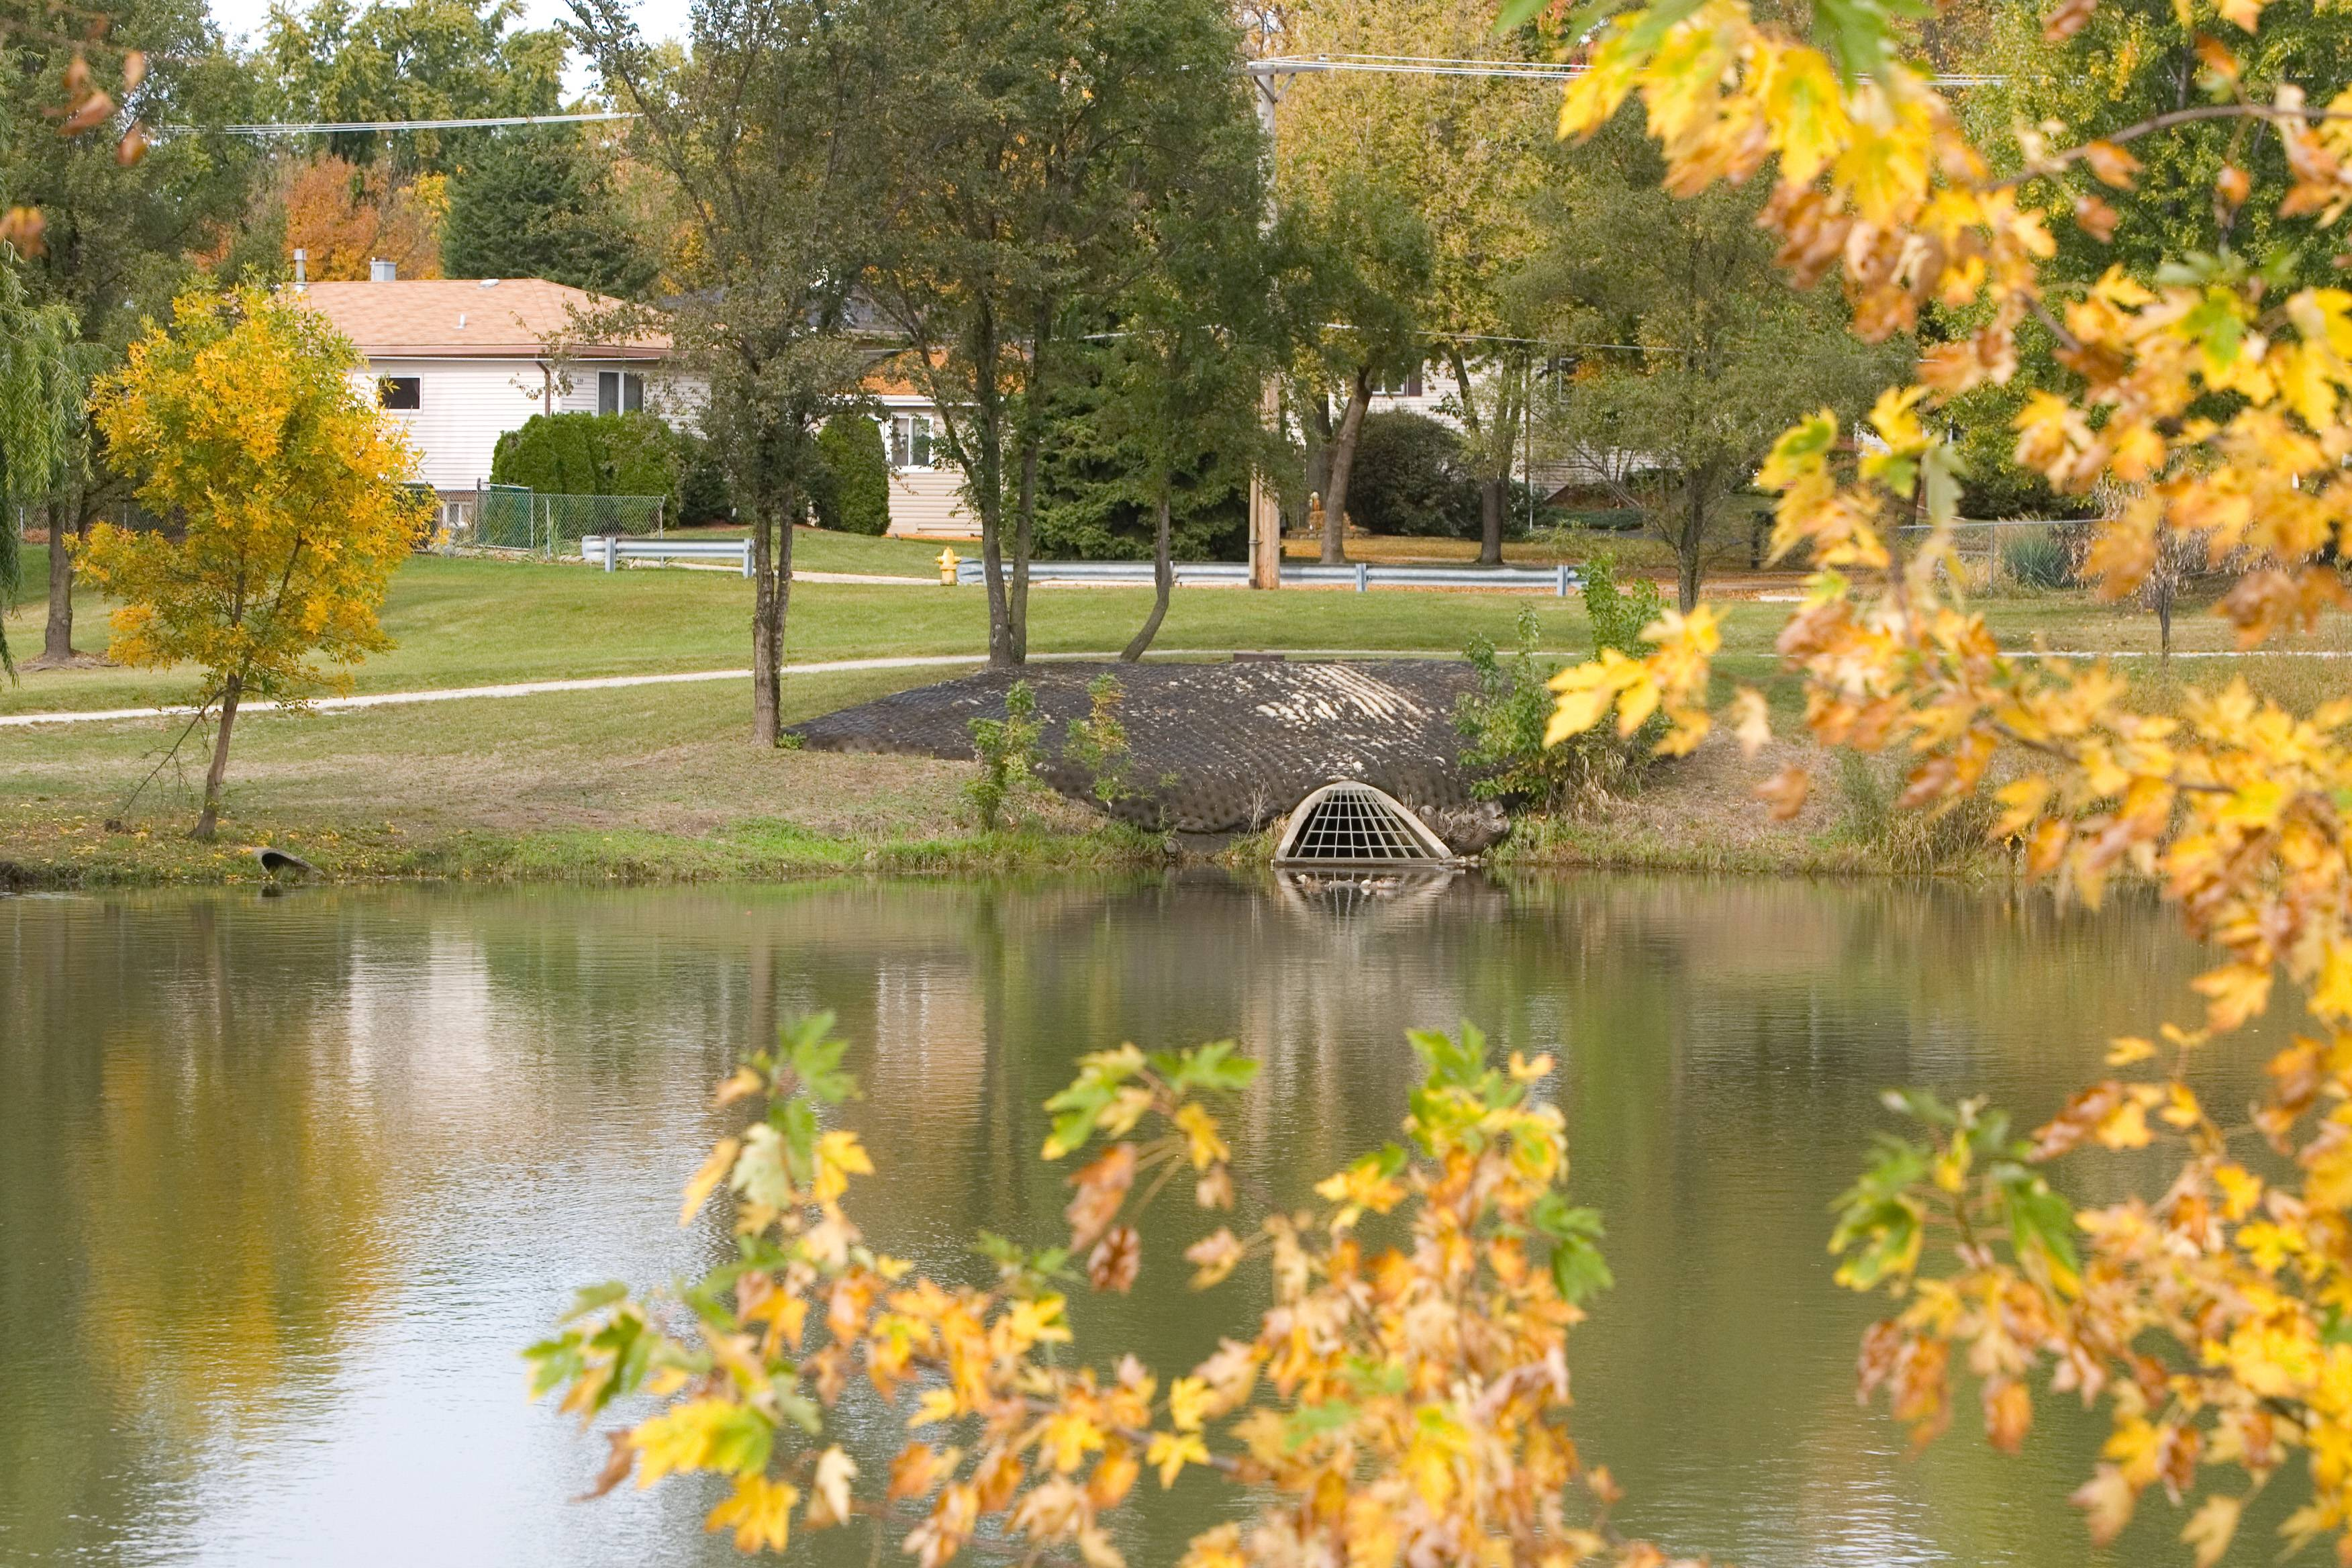 The state recently awarded a $500,000 grant to Lombard to help address flooding issues at Vista Pond. The money will help fund excavation to increase the capacity of the pond, which should reduce flooding for nearby residents.